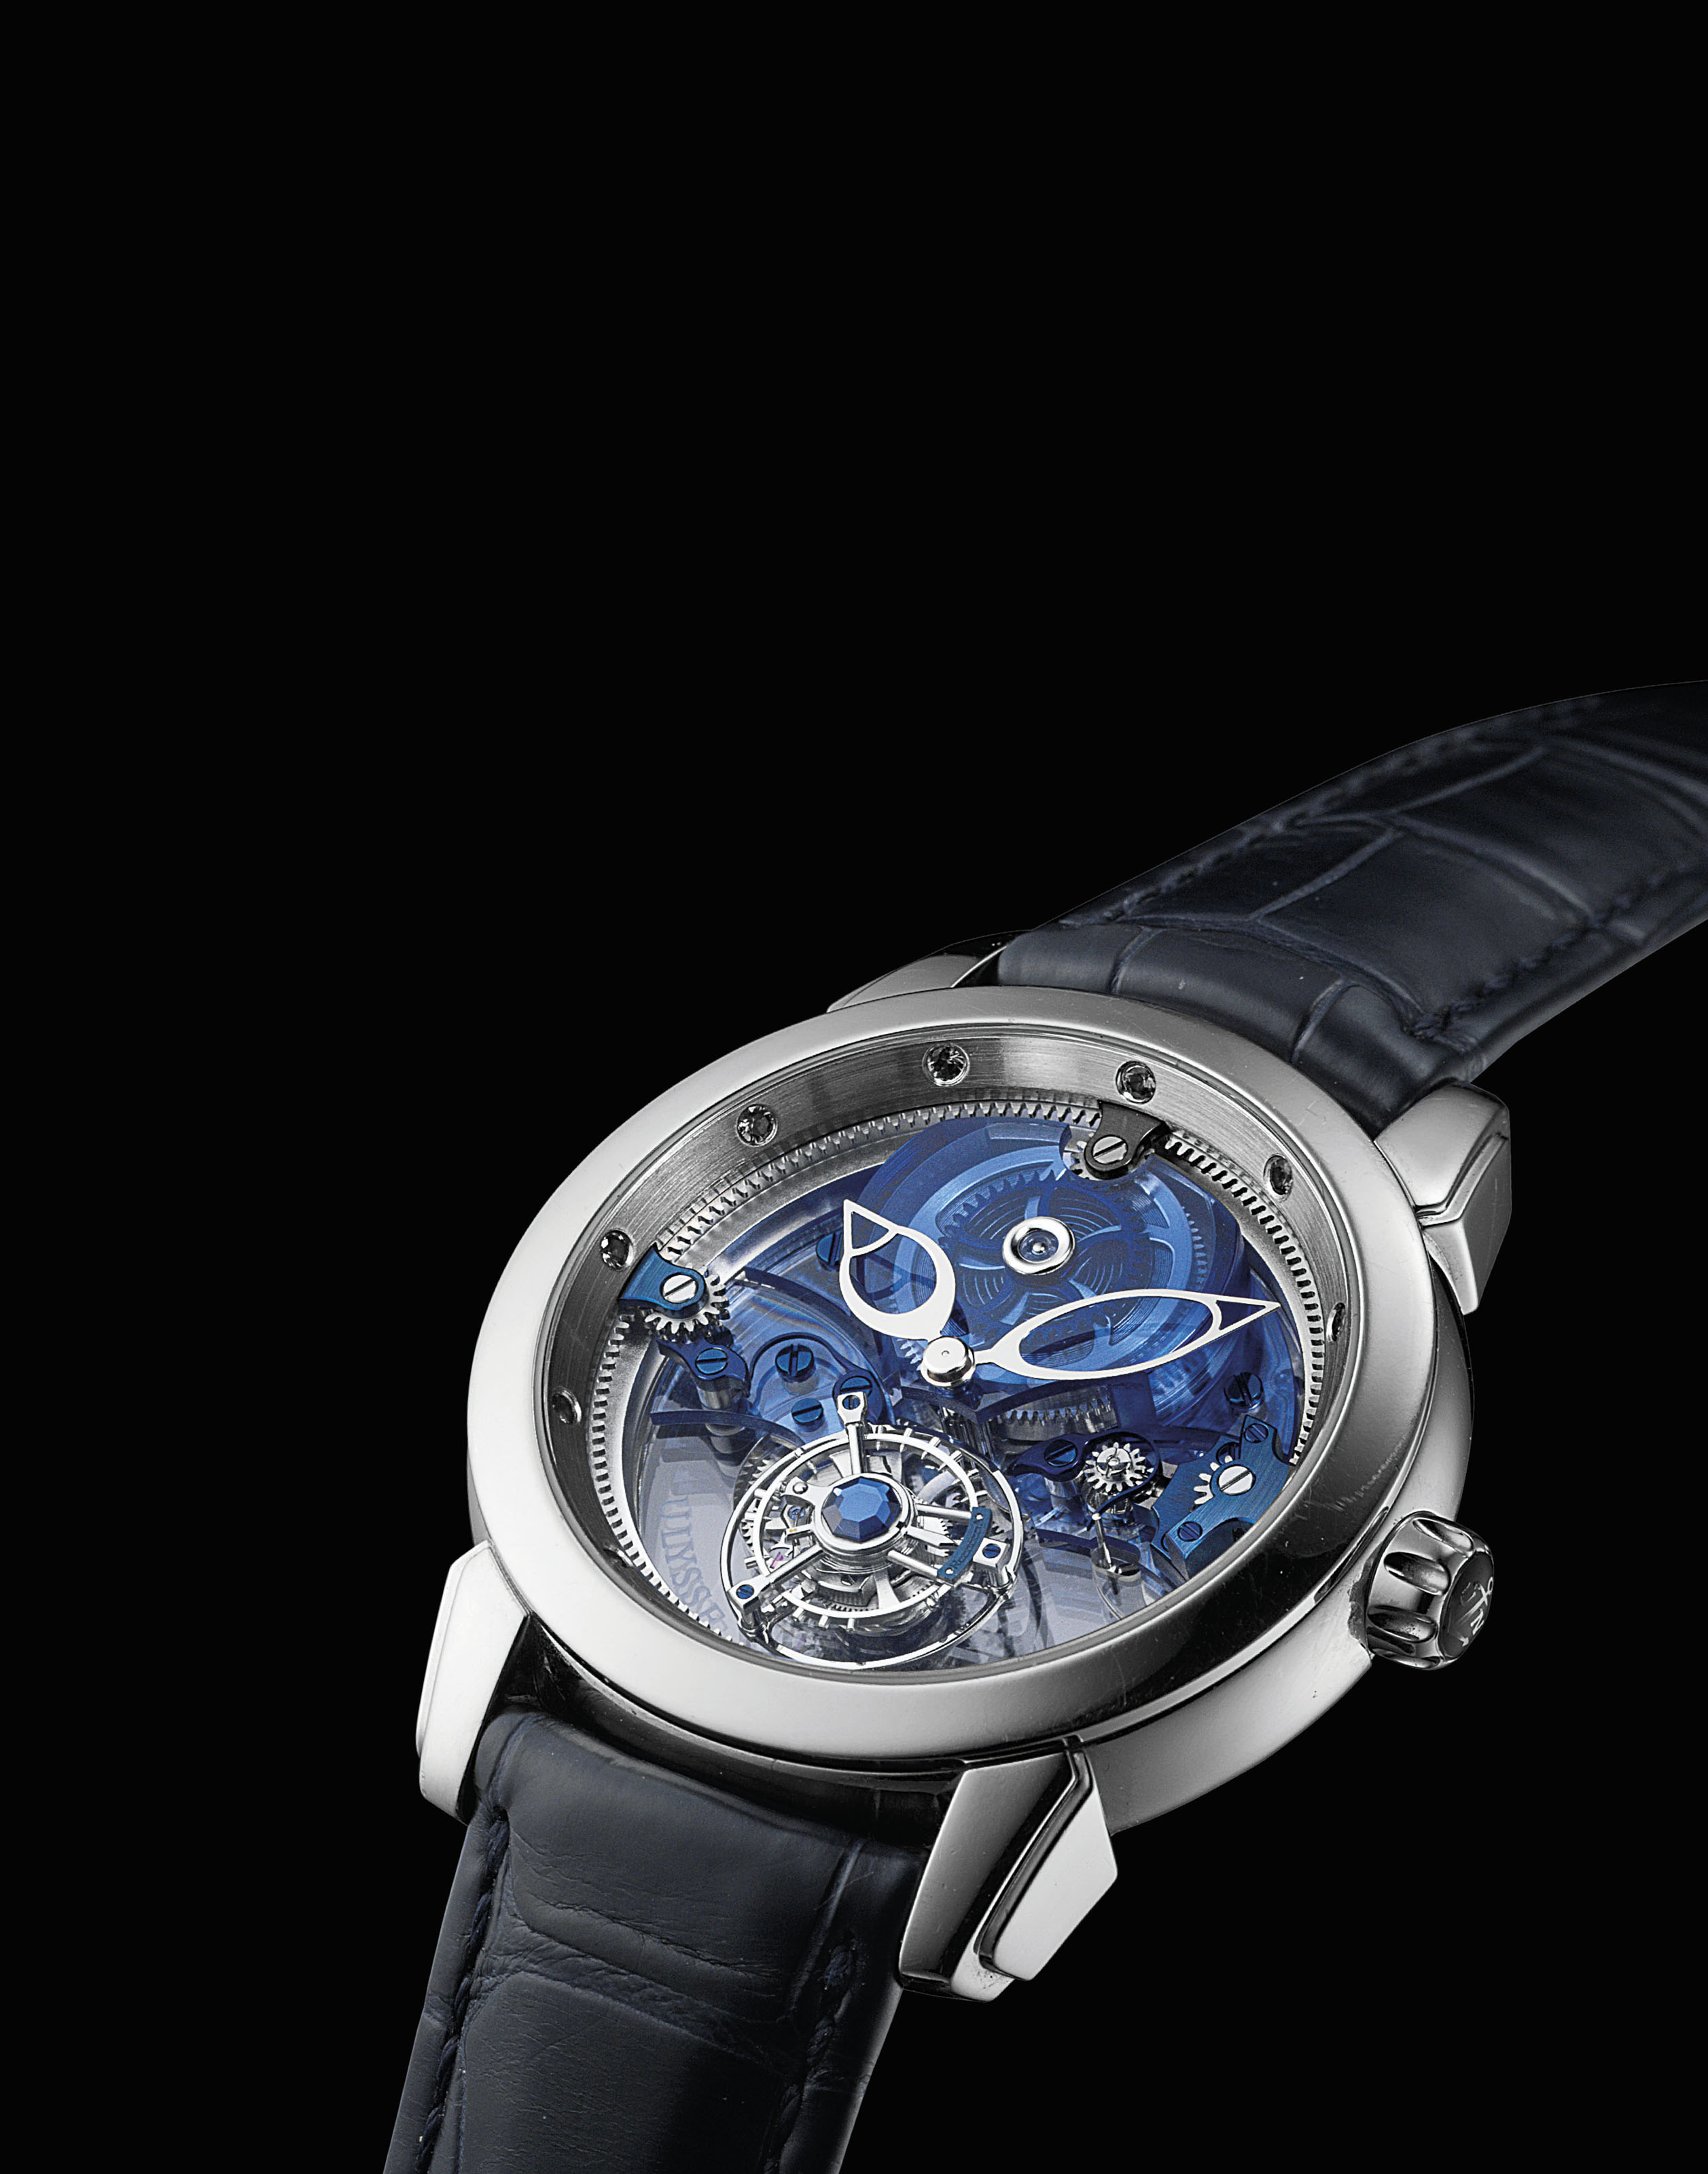 ULYSSE NARDIN. A FINE AND RARE PLATINUM AND SAPPHIRE-SET LIMITED EDITION SKELETONISED TOURBILLON WRISTWATCH